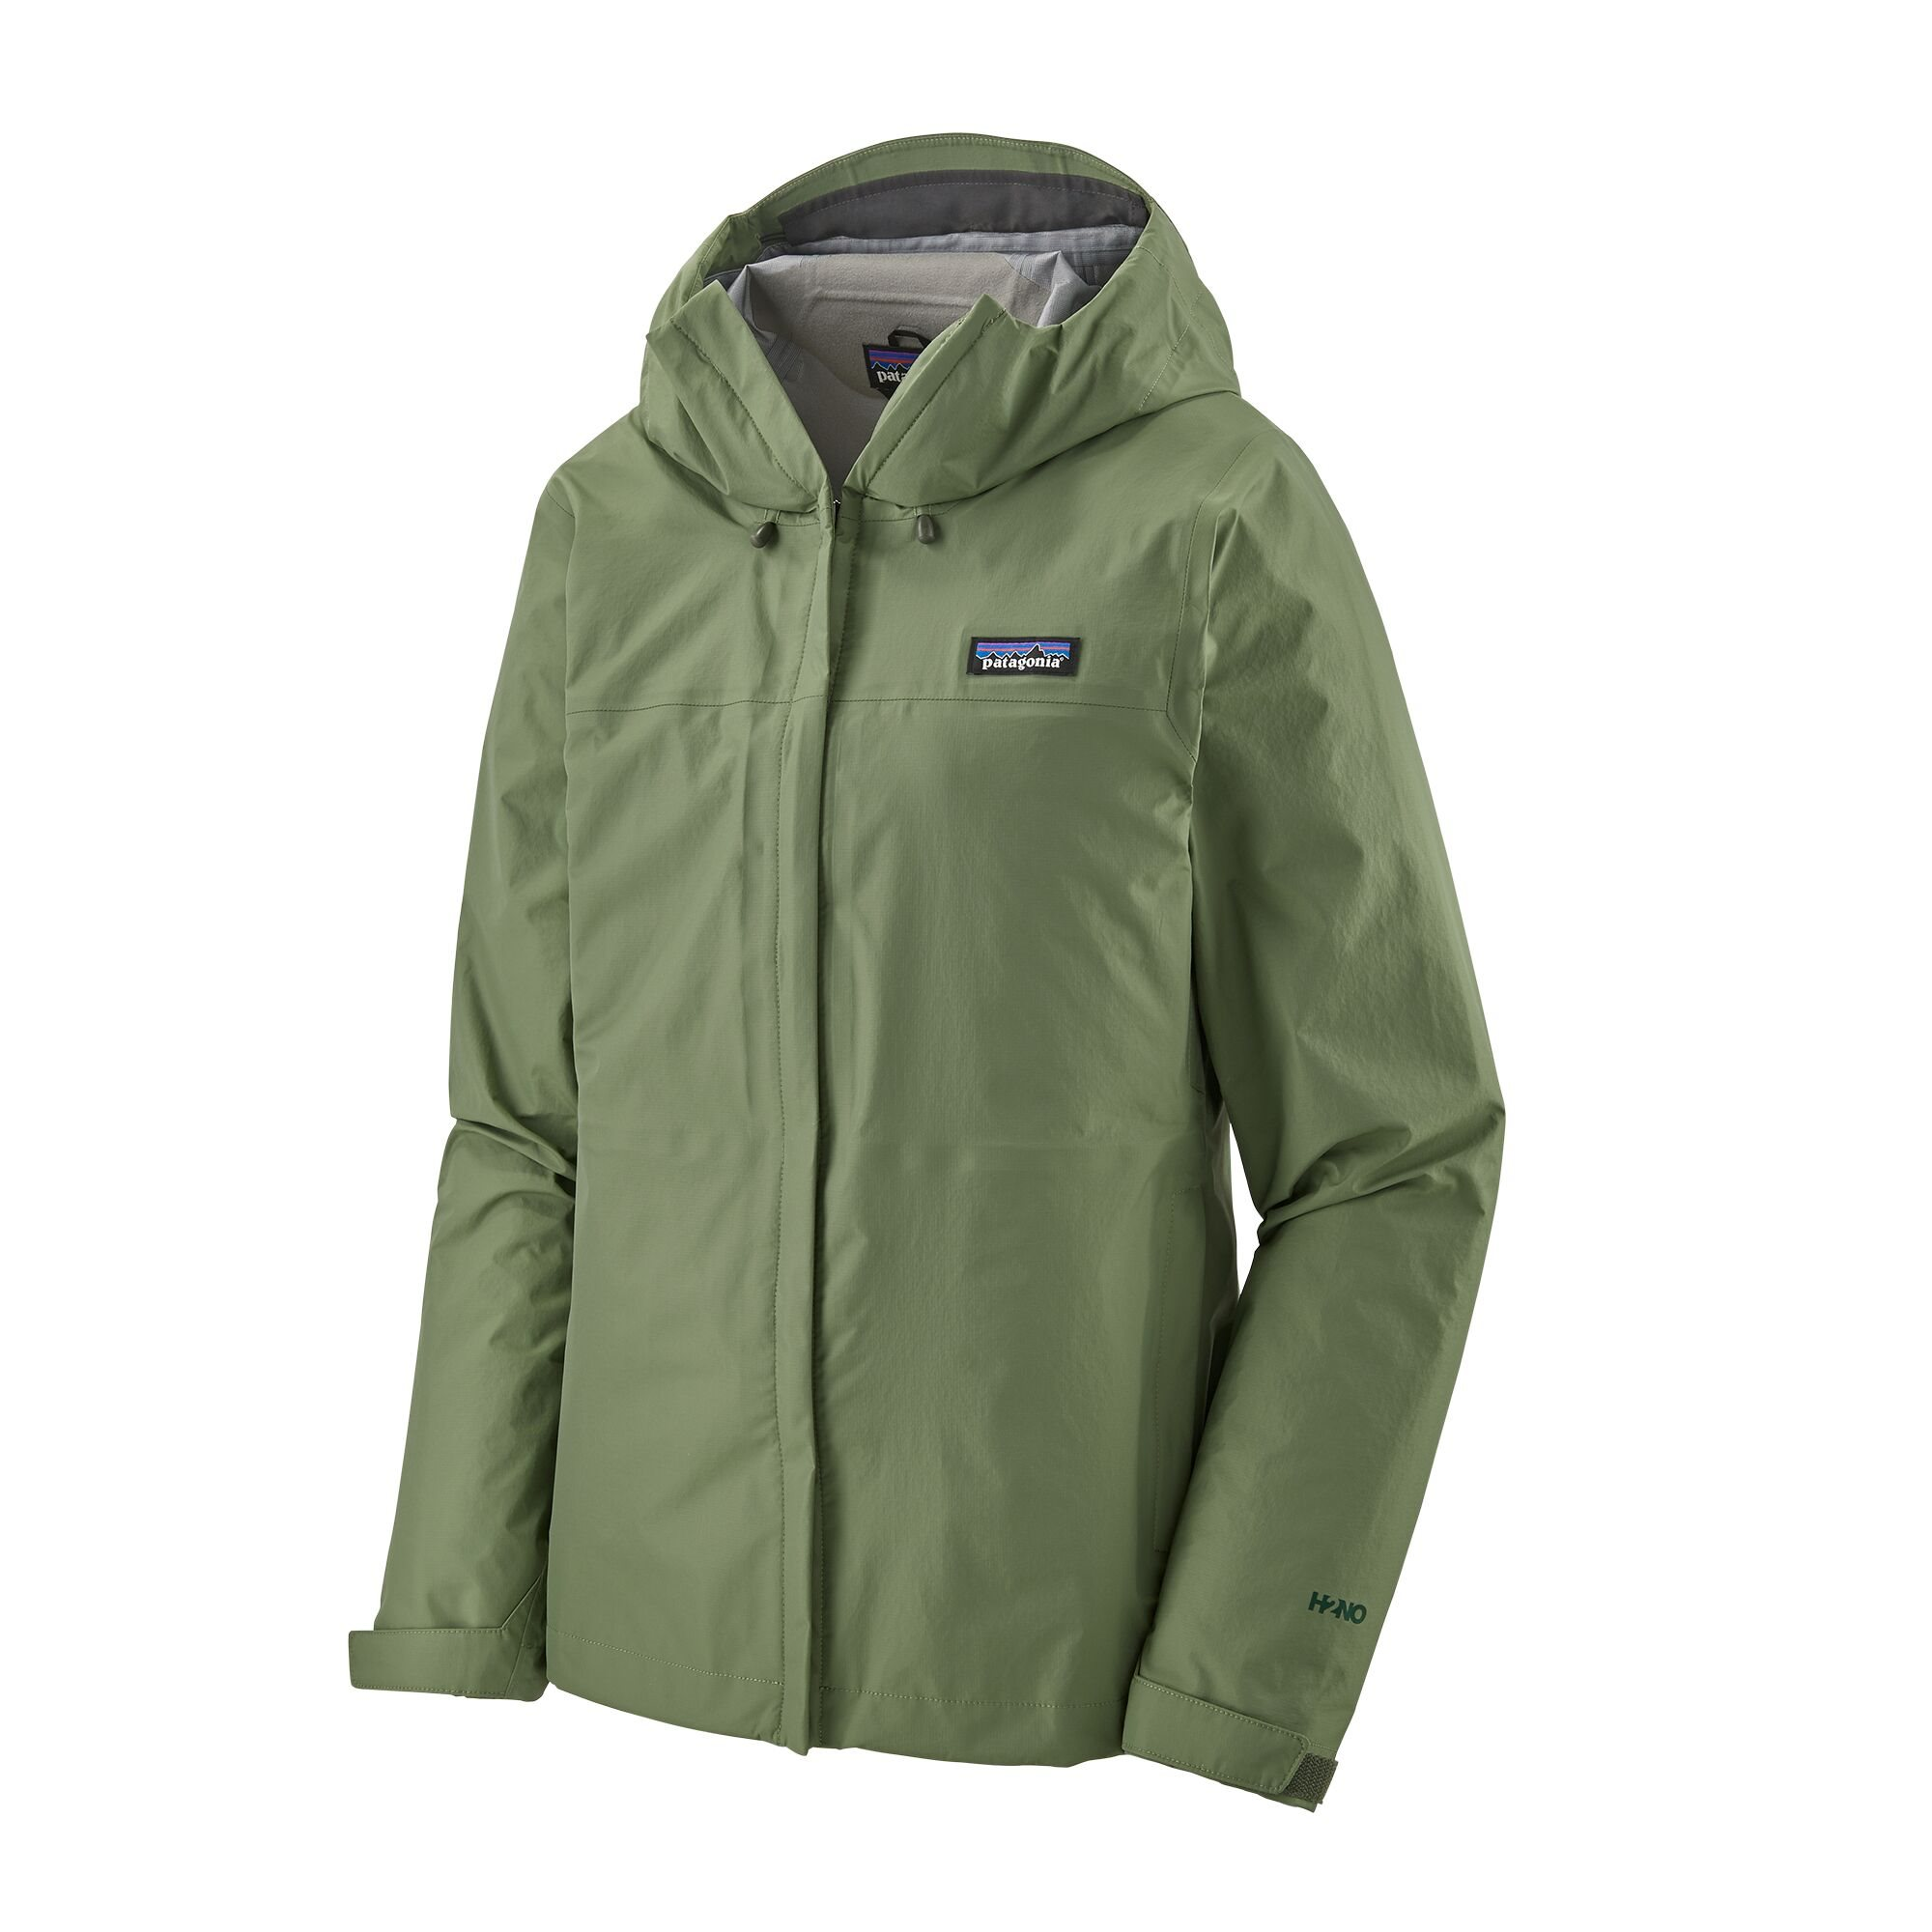 W's Torrentshell 3L Jacket Huna Camping & Outdoorshop